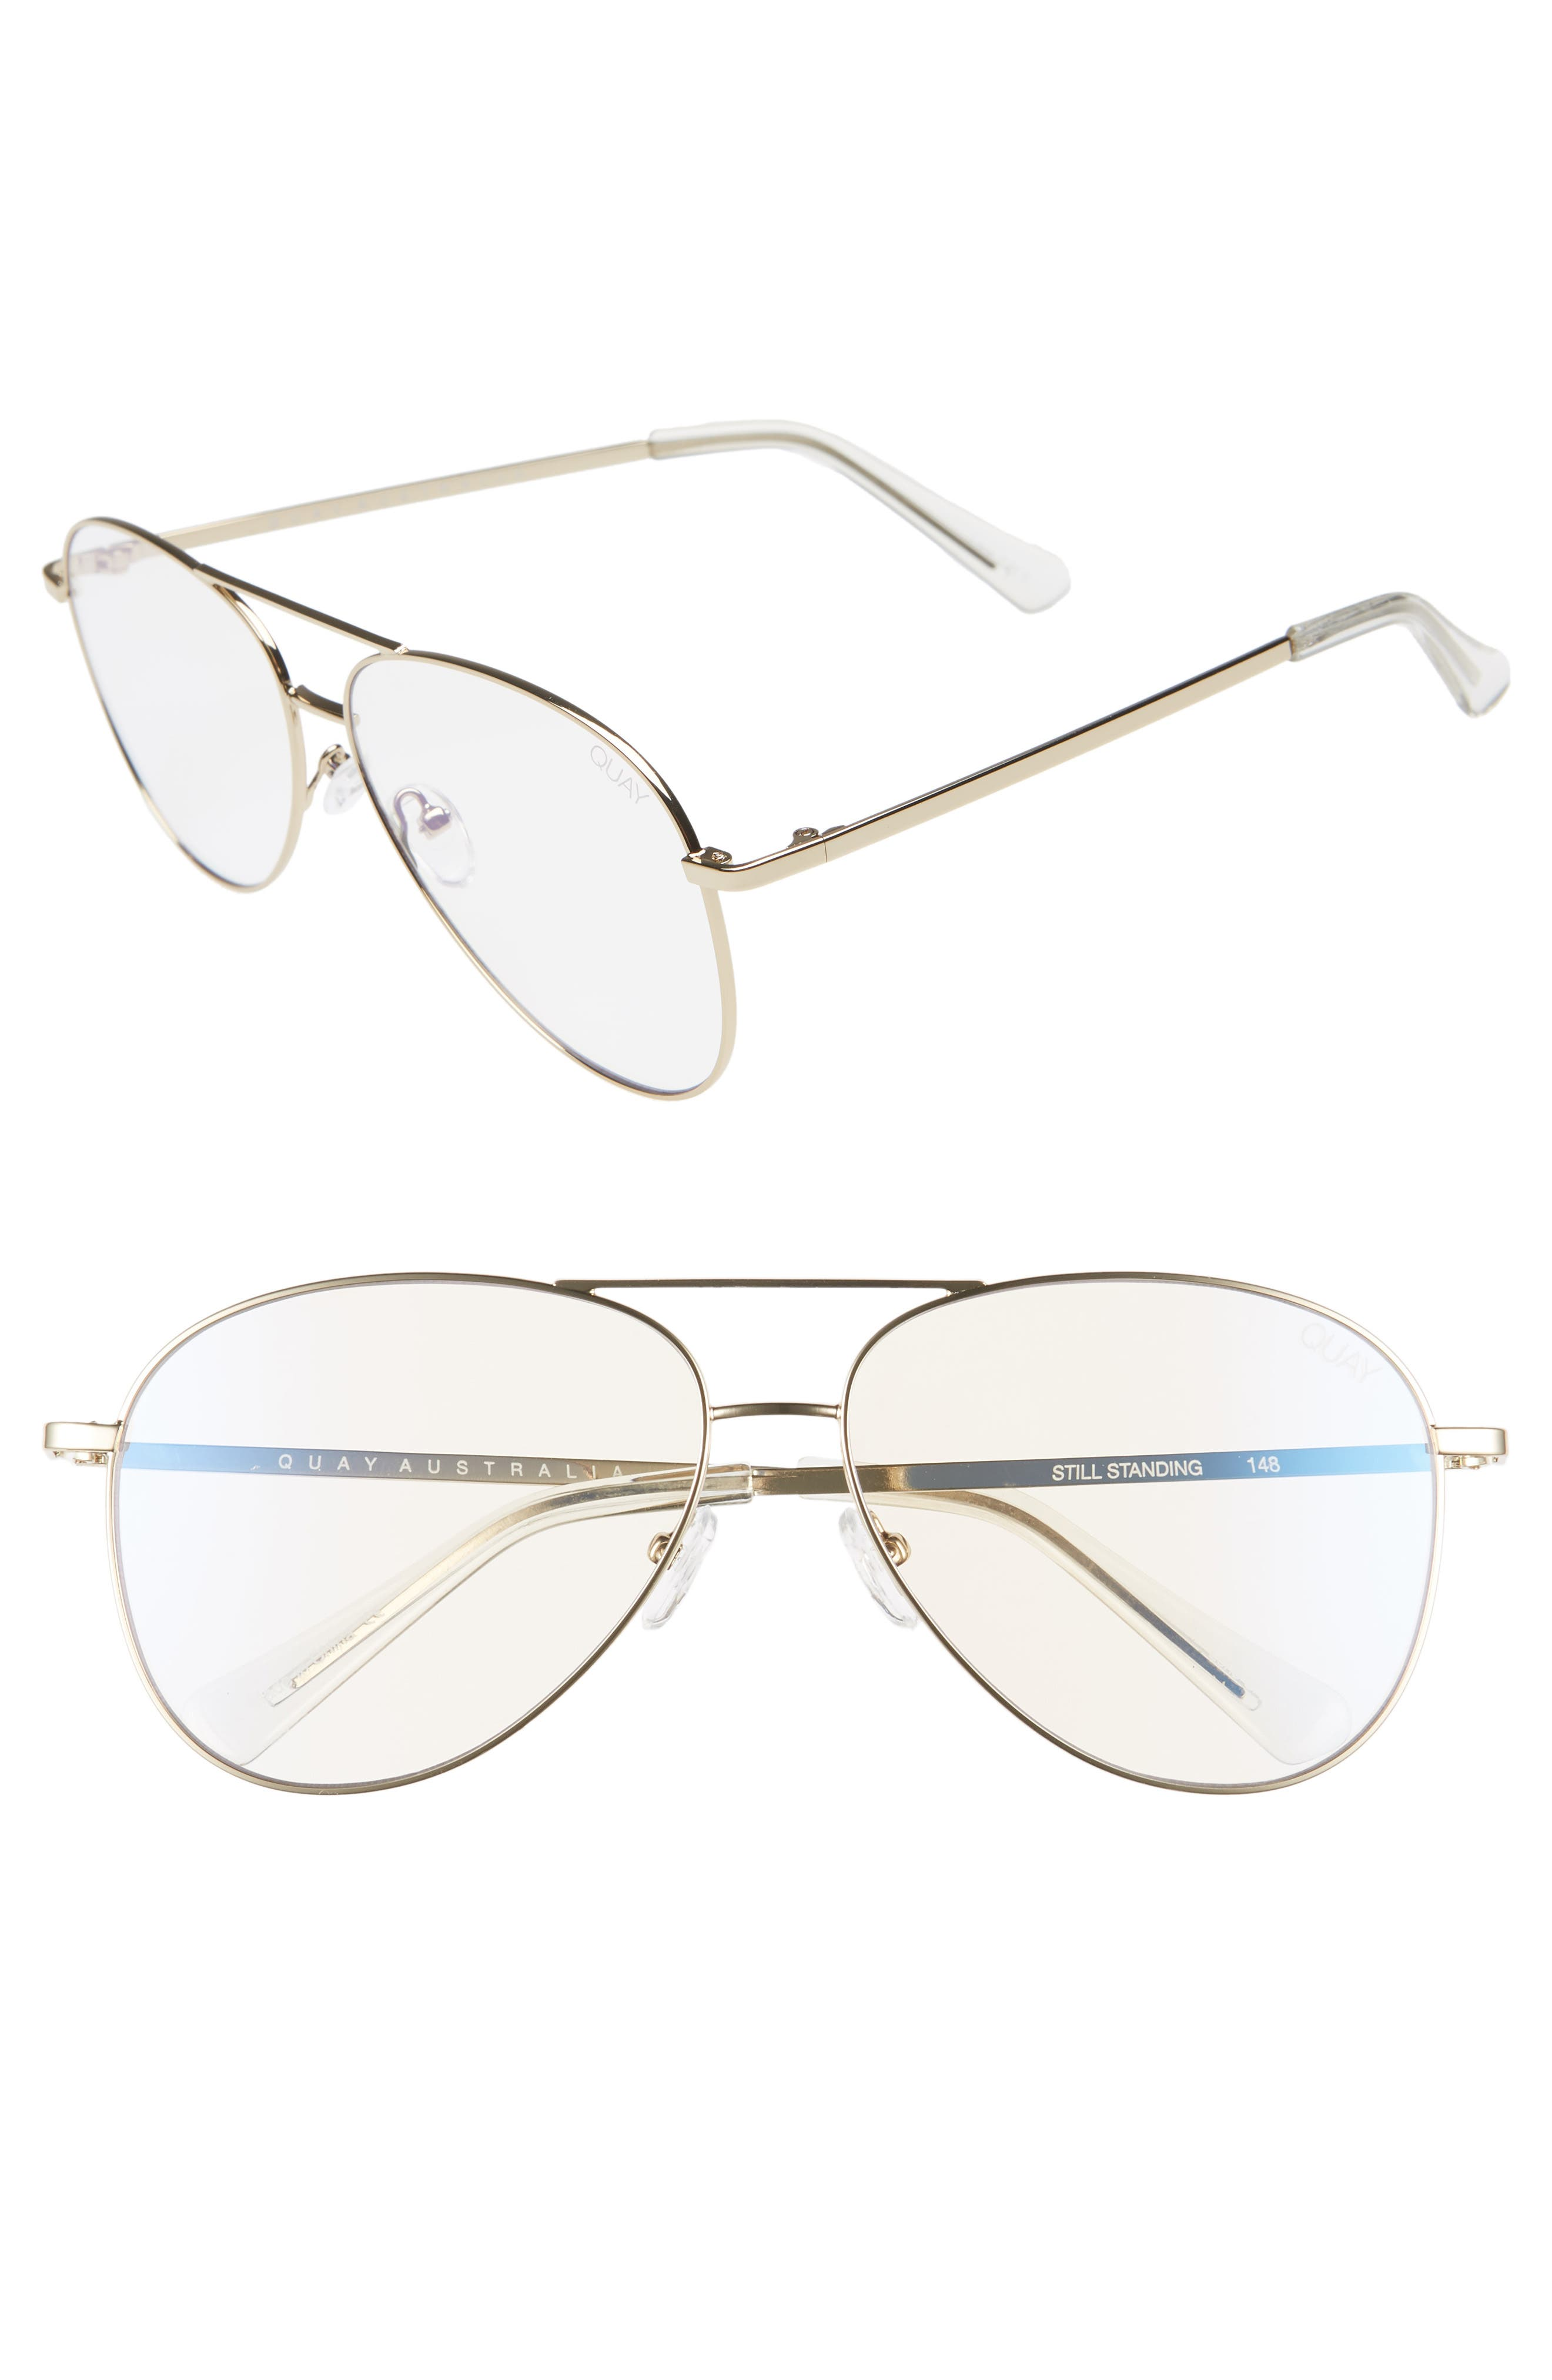 Still Standing 58mm Aviator Fashion Glasses,                             Main thumbnail 1, color,                             GOLD / CLEAR BLUE LIGHT